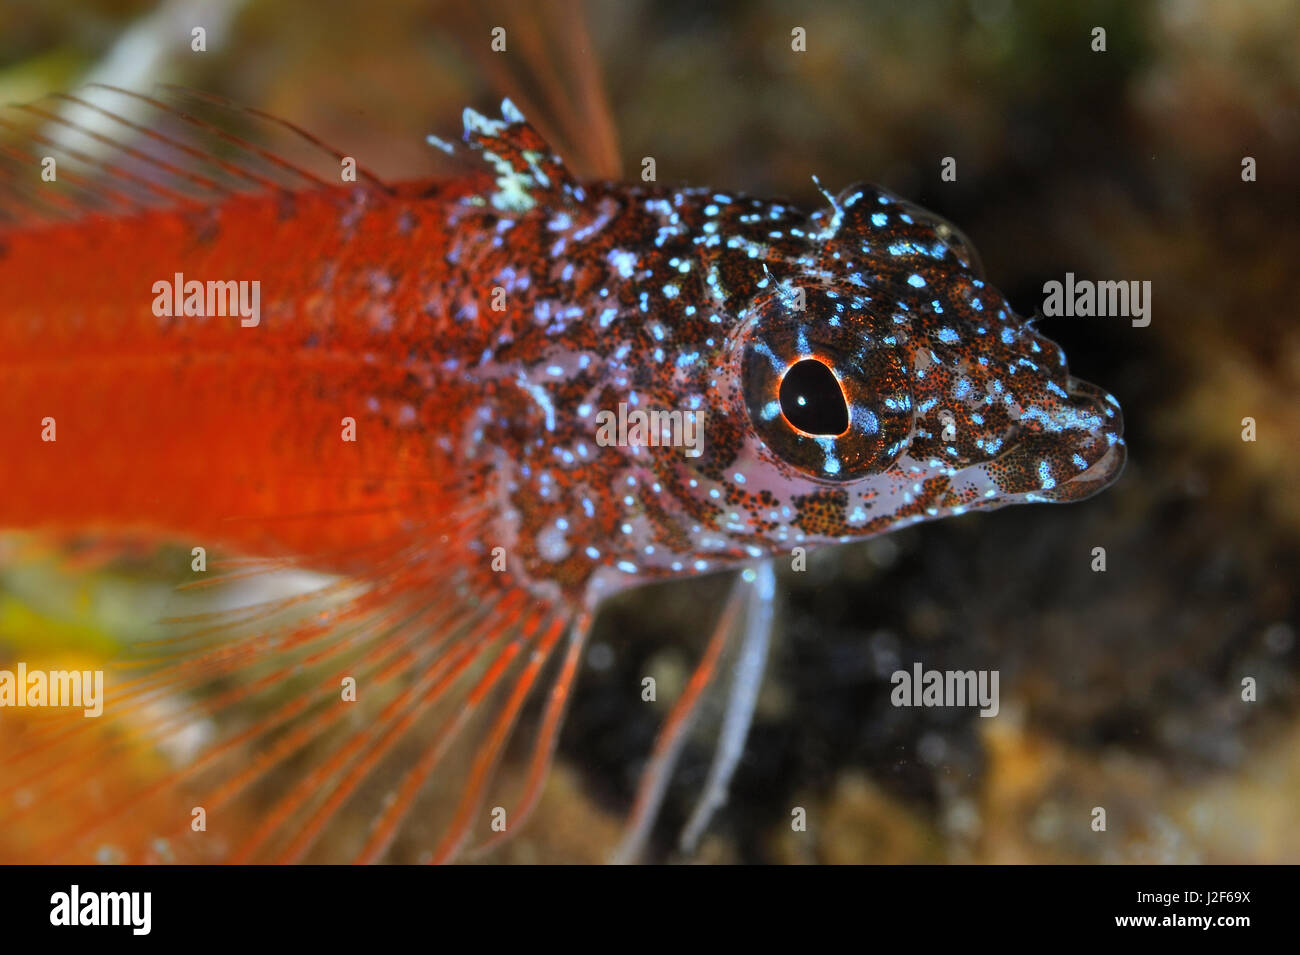 Colored Fish Of Mediterranean Sea Stock Photos & Colored Fish Of ...